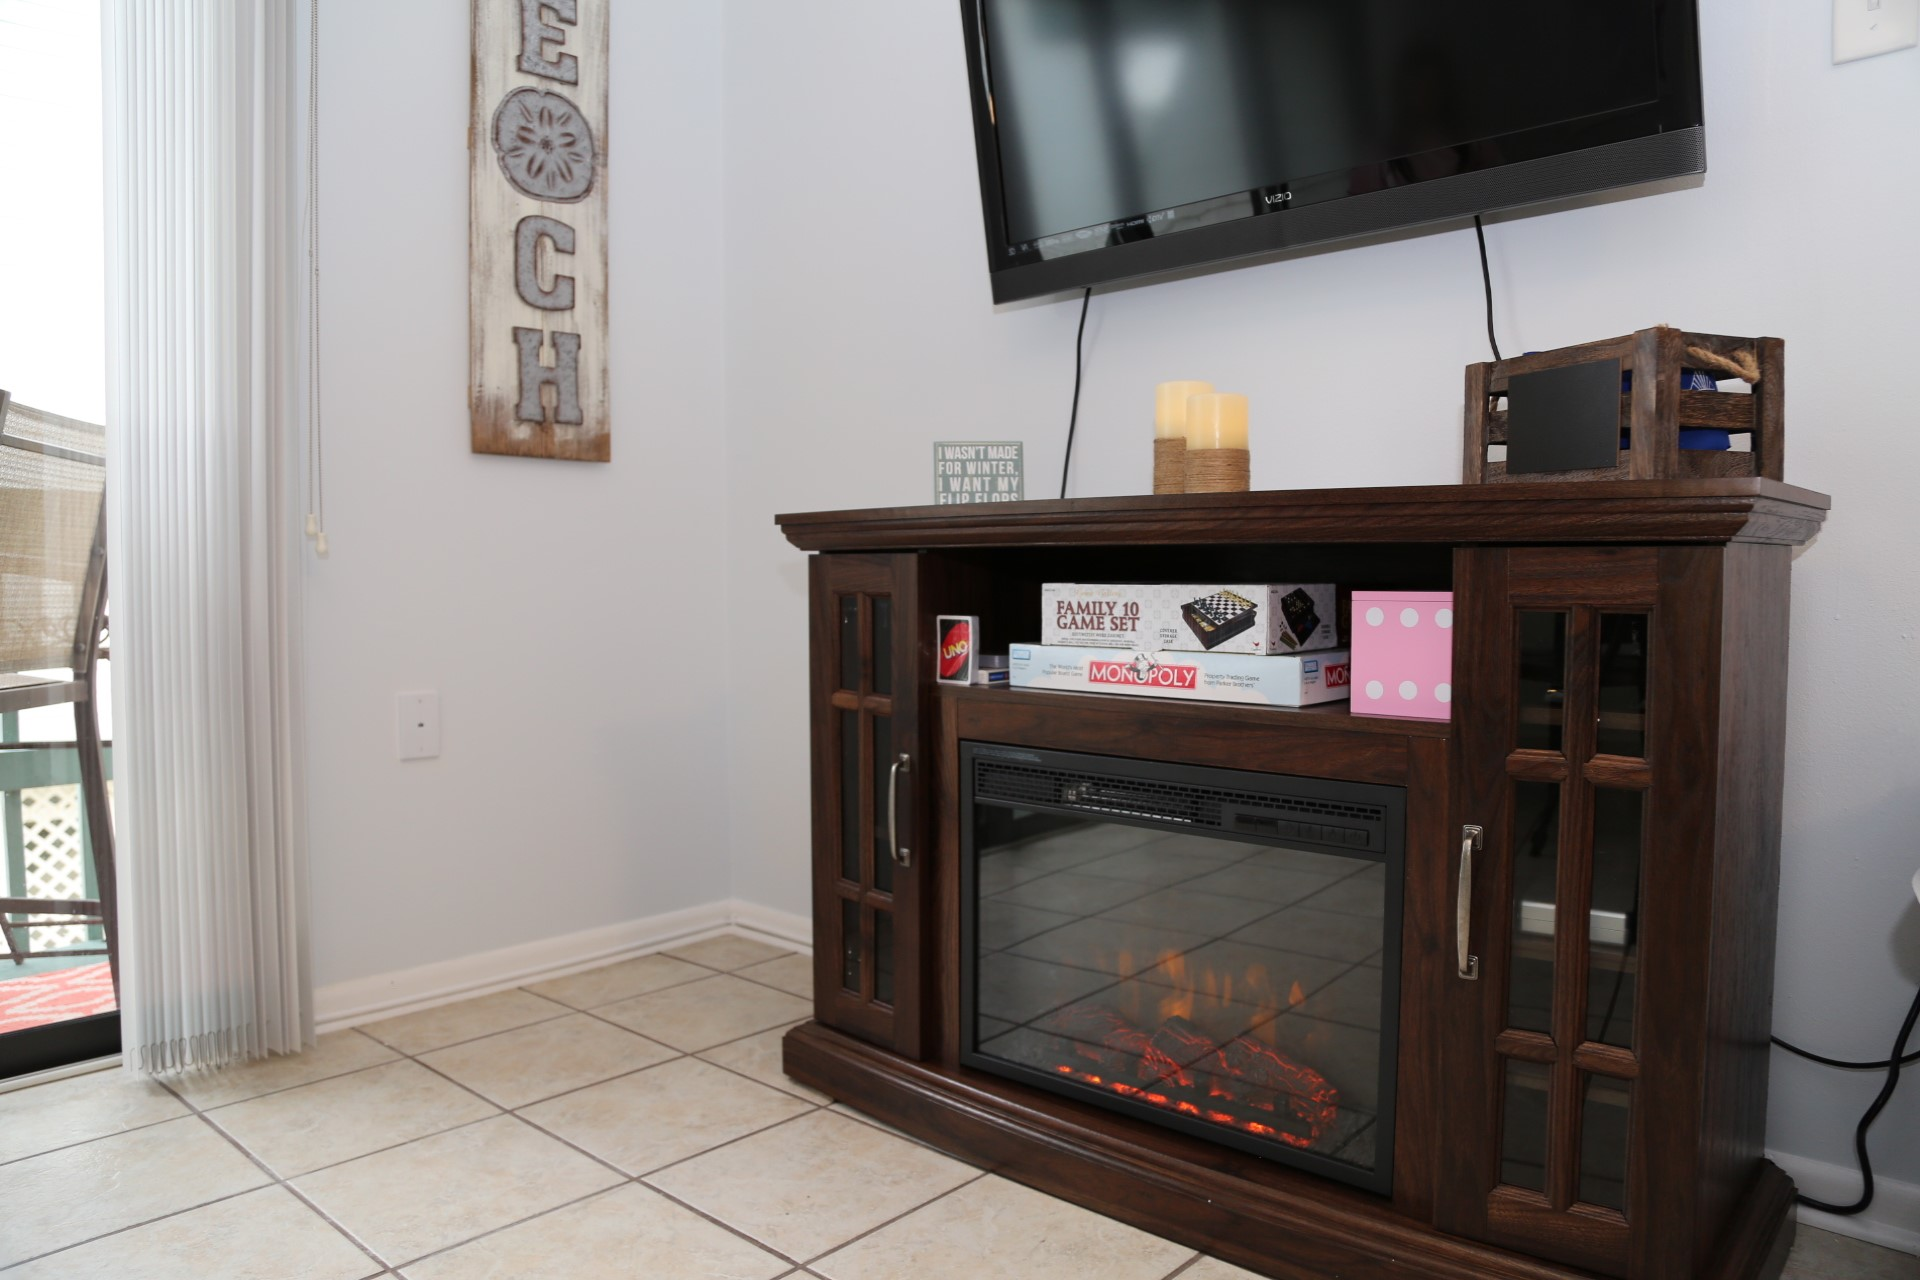 Warming electric fire place.